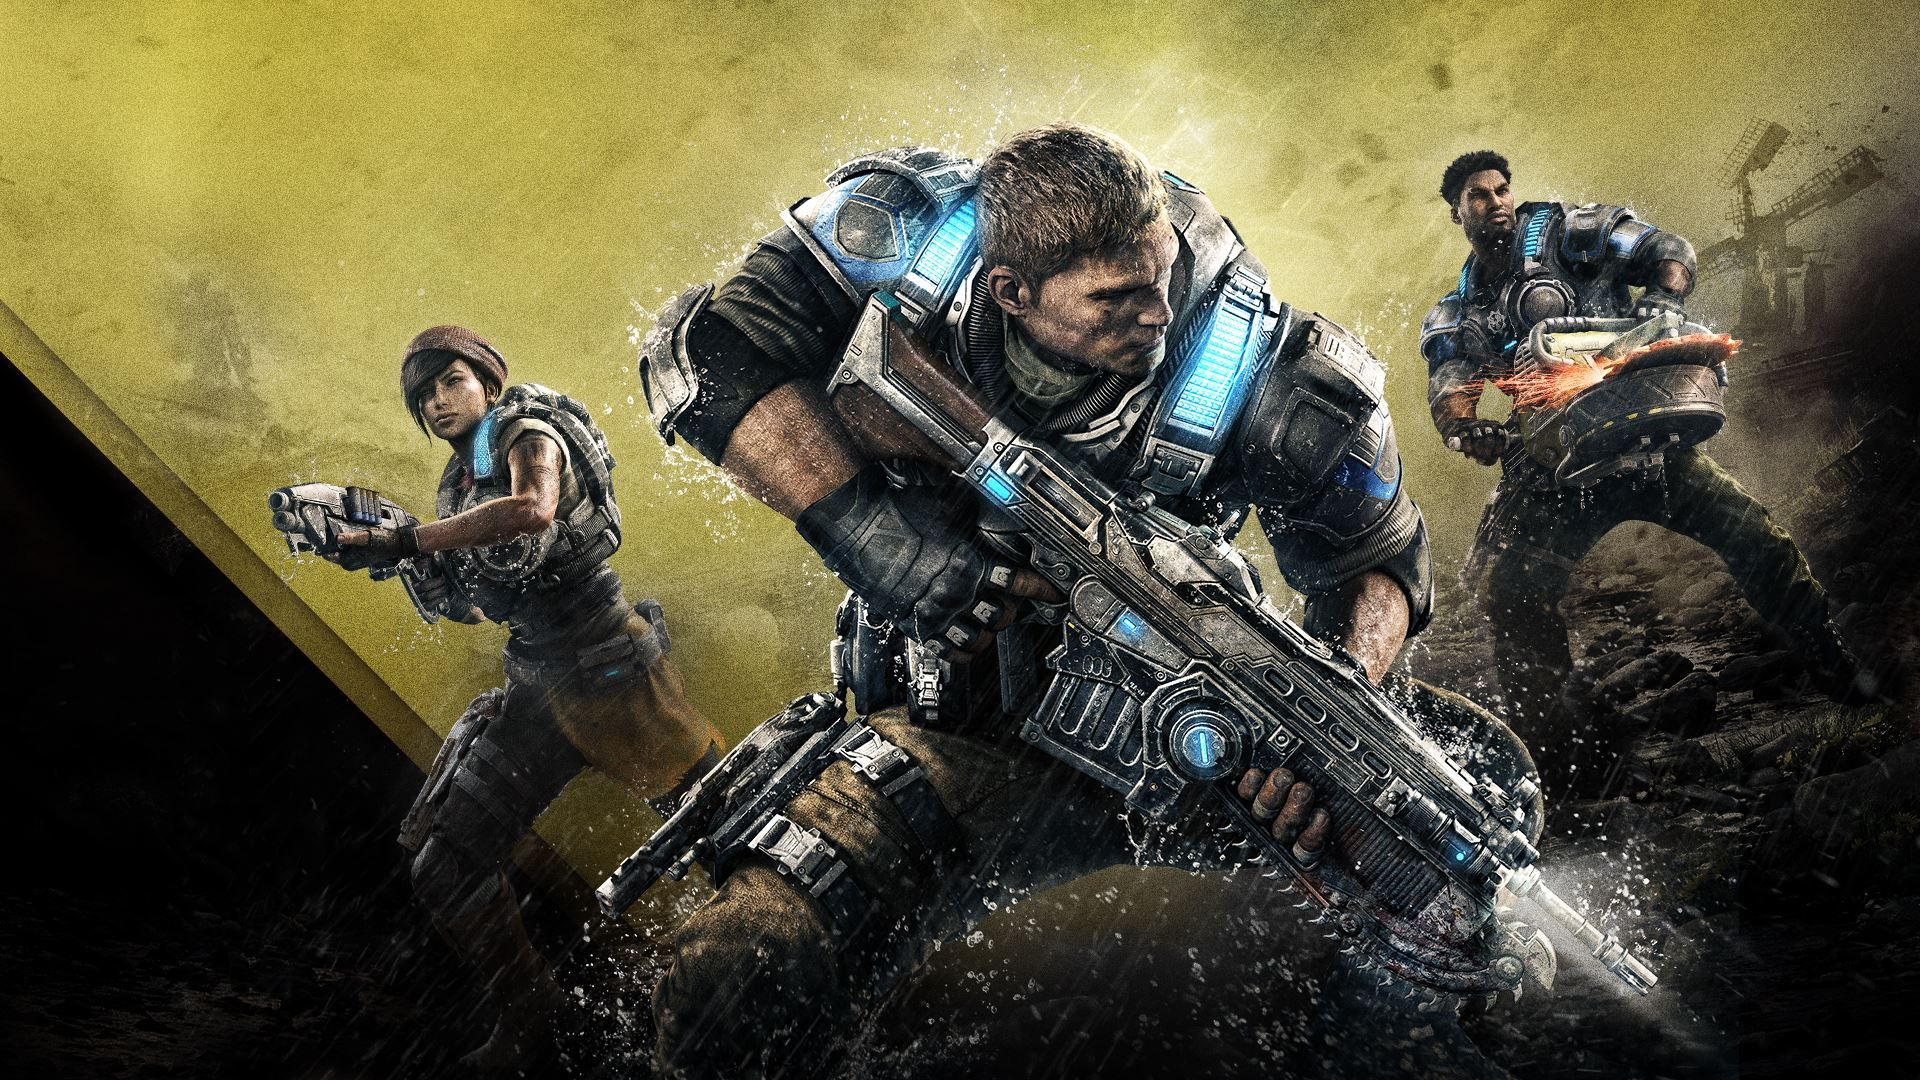 The Coalition publica los primeros 20 minutos del prólogo de Gears of War 4